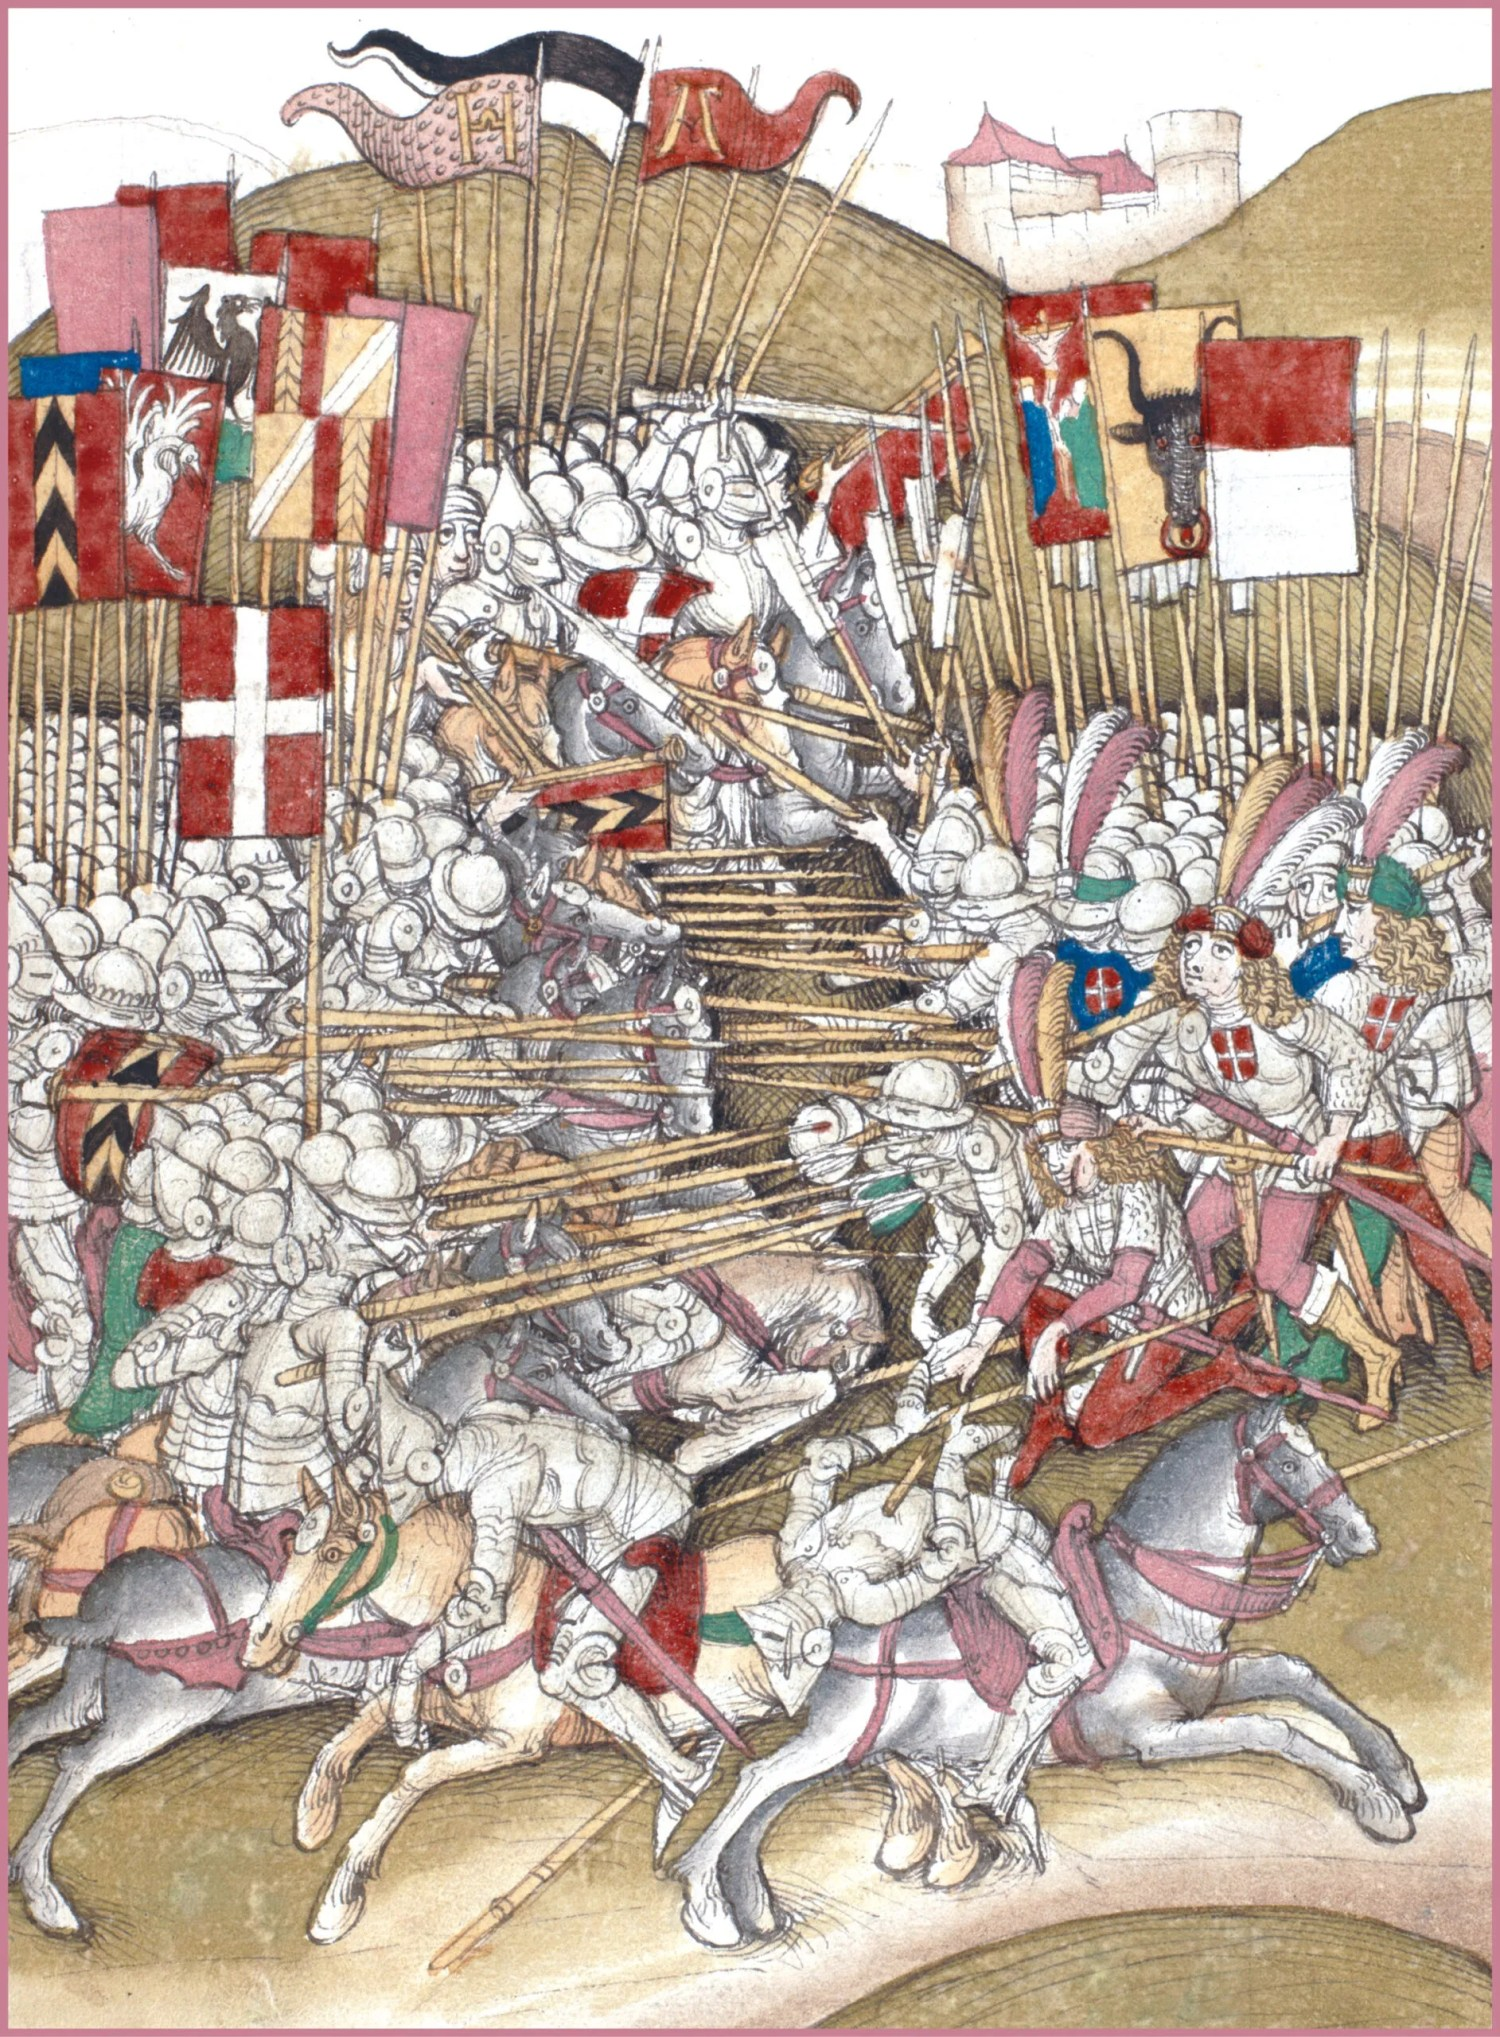 OPPOSITE Another near-contemporary image, this of the Battle of Laupen. The artist has depicted the mountainous terrain and shows the doomed Austrian chivalry on the left, Erlach's Swiss on the right.